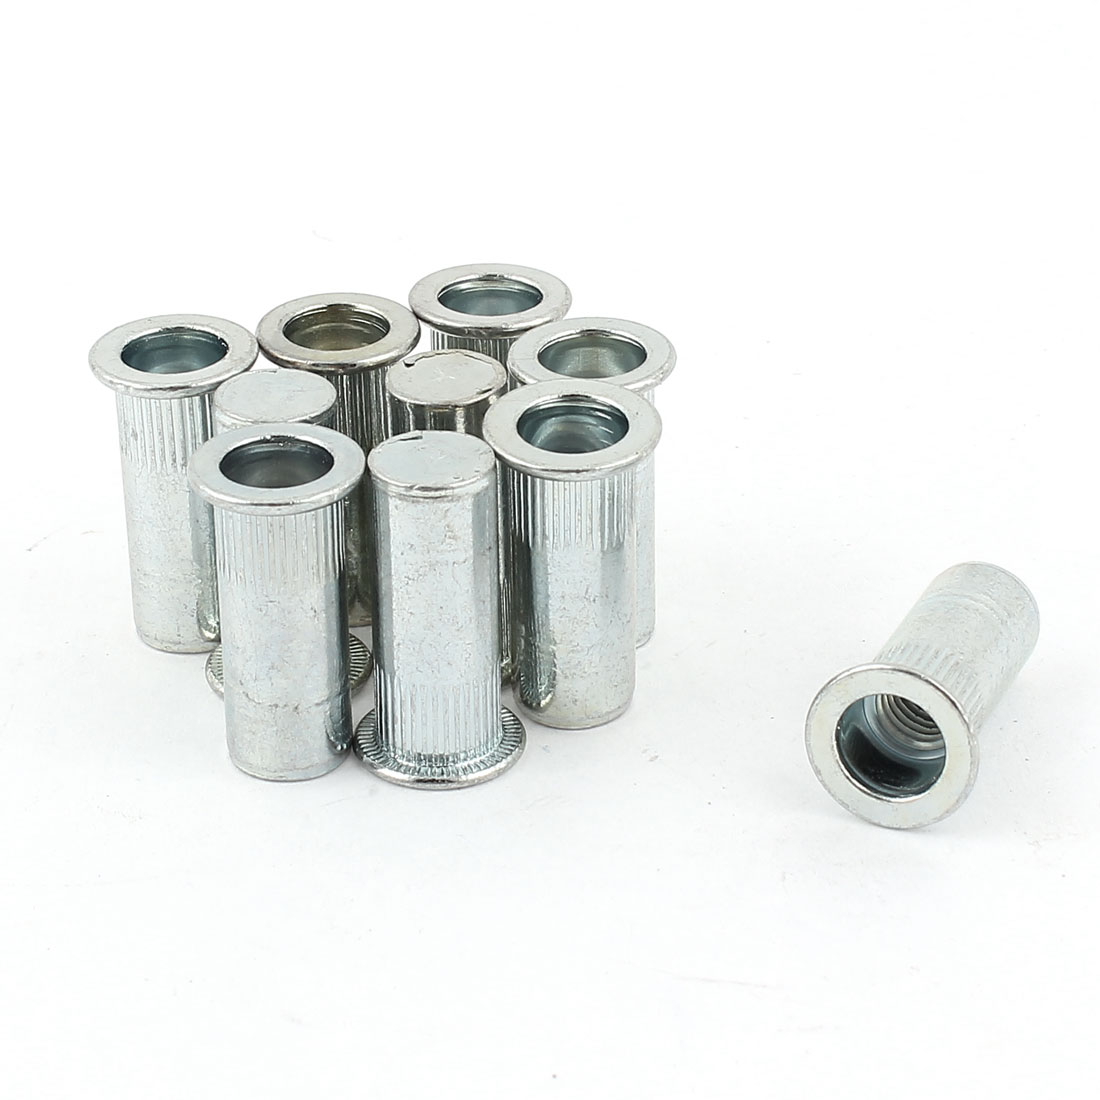 10pcs Knurled Metal Rivet Nuts Flat Head Inserts Nutserts Fasteners M8x26mm